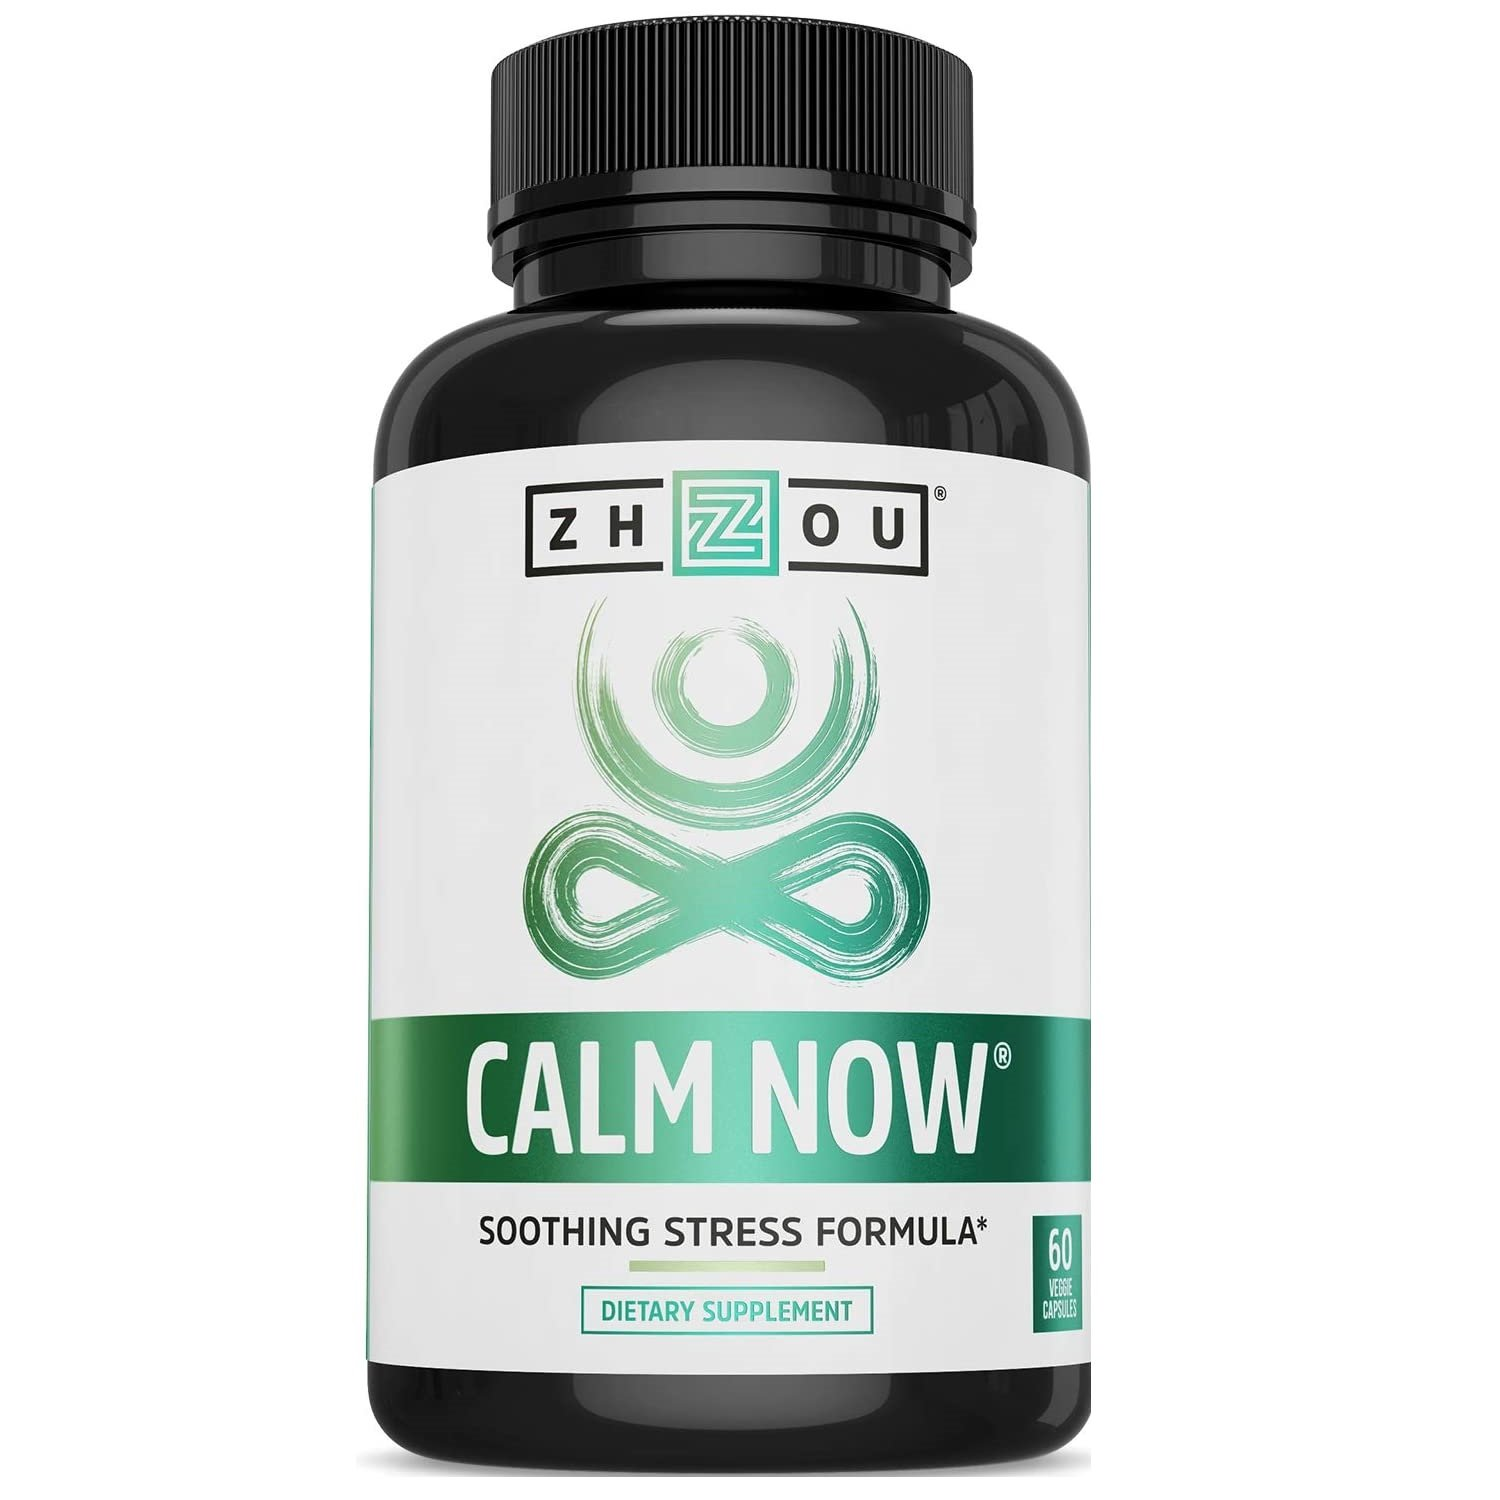 Anxiety and Stress Support Formula, 60 Ct, Calm Now by Zhou Nutrition